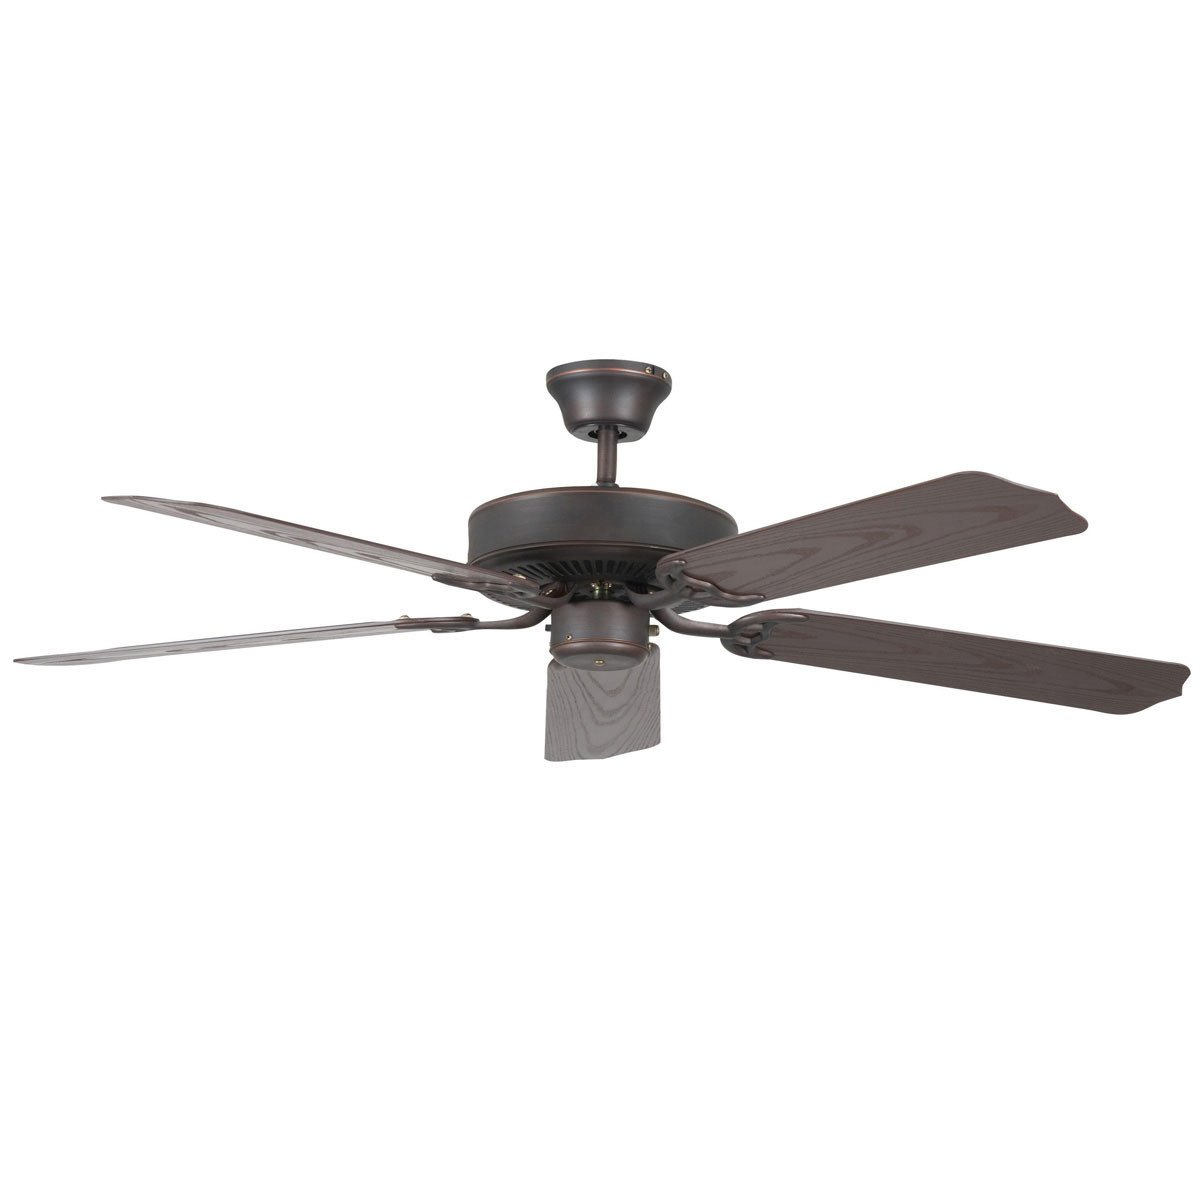 "Concord Fans 44"" Oil Rubbed Bronze Porch Small Outdoor Ceiling Fan"